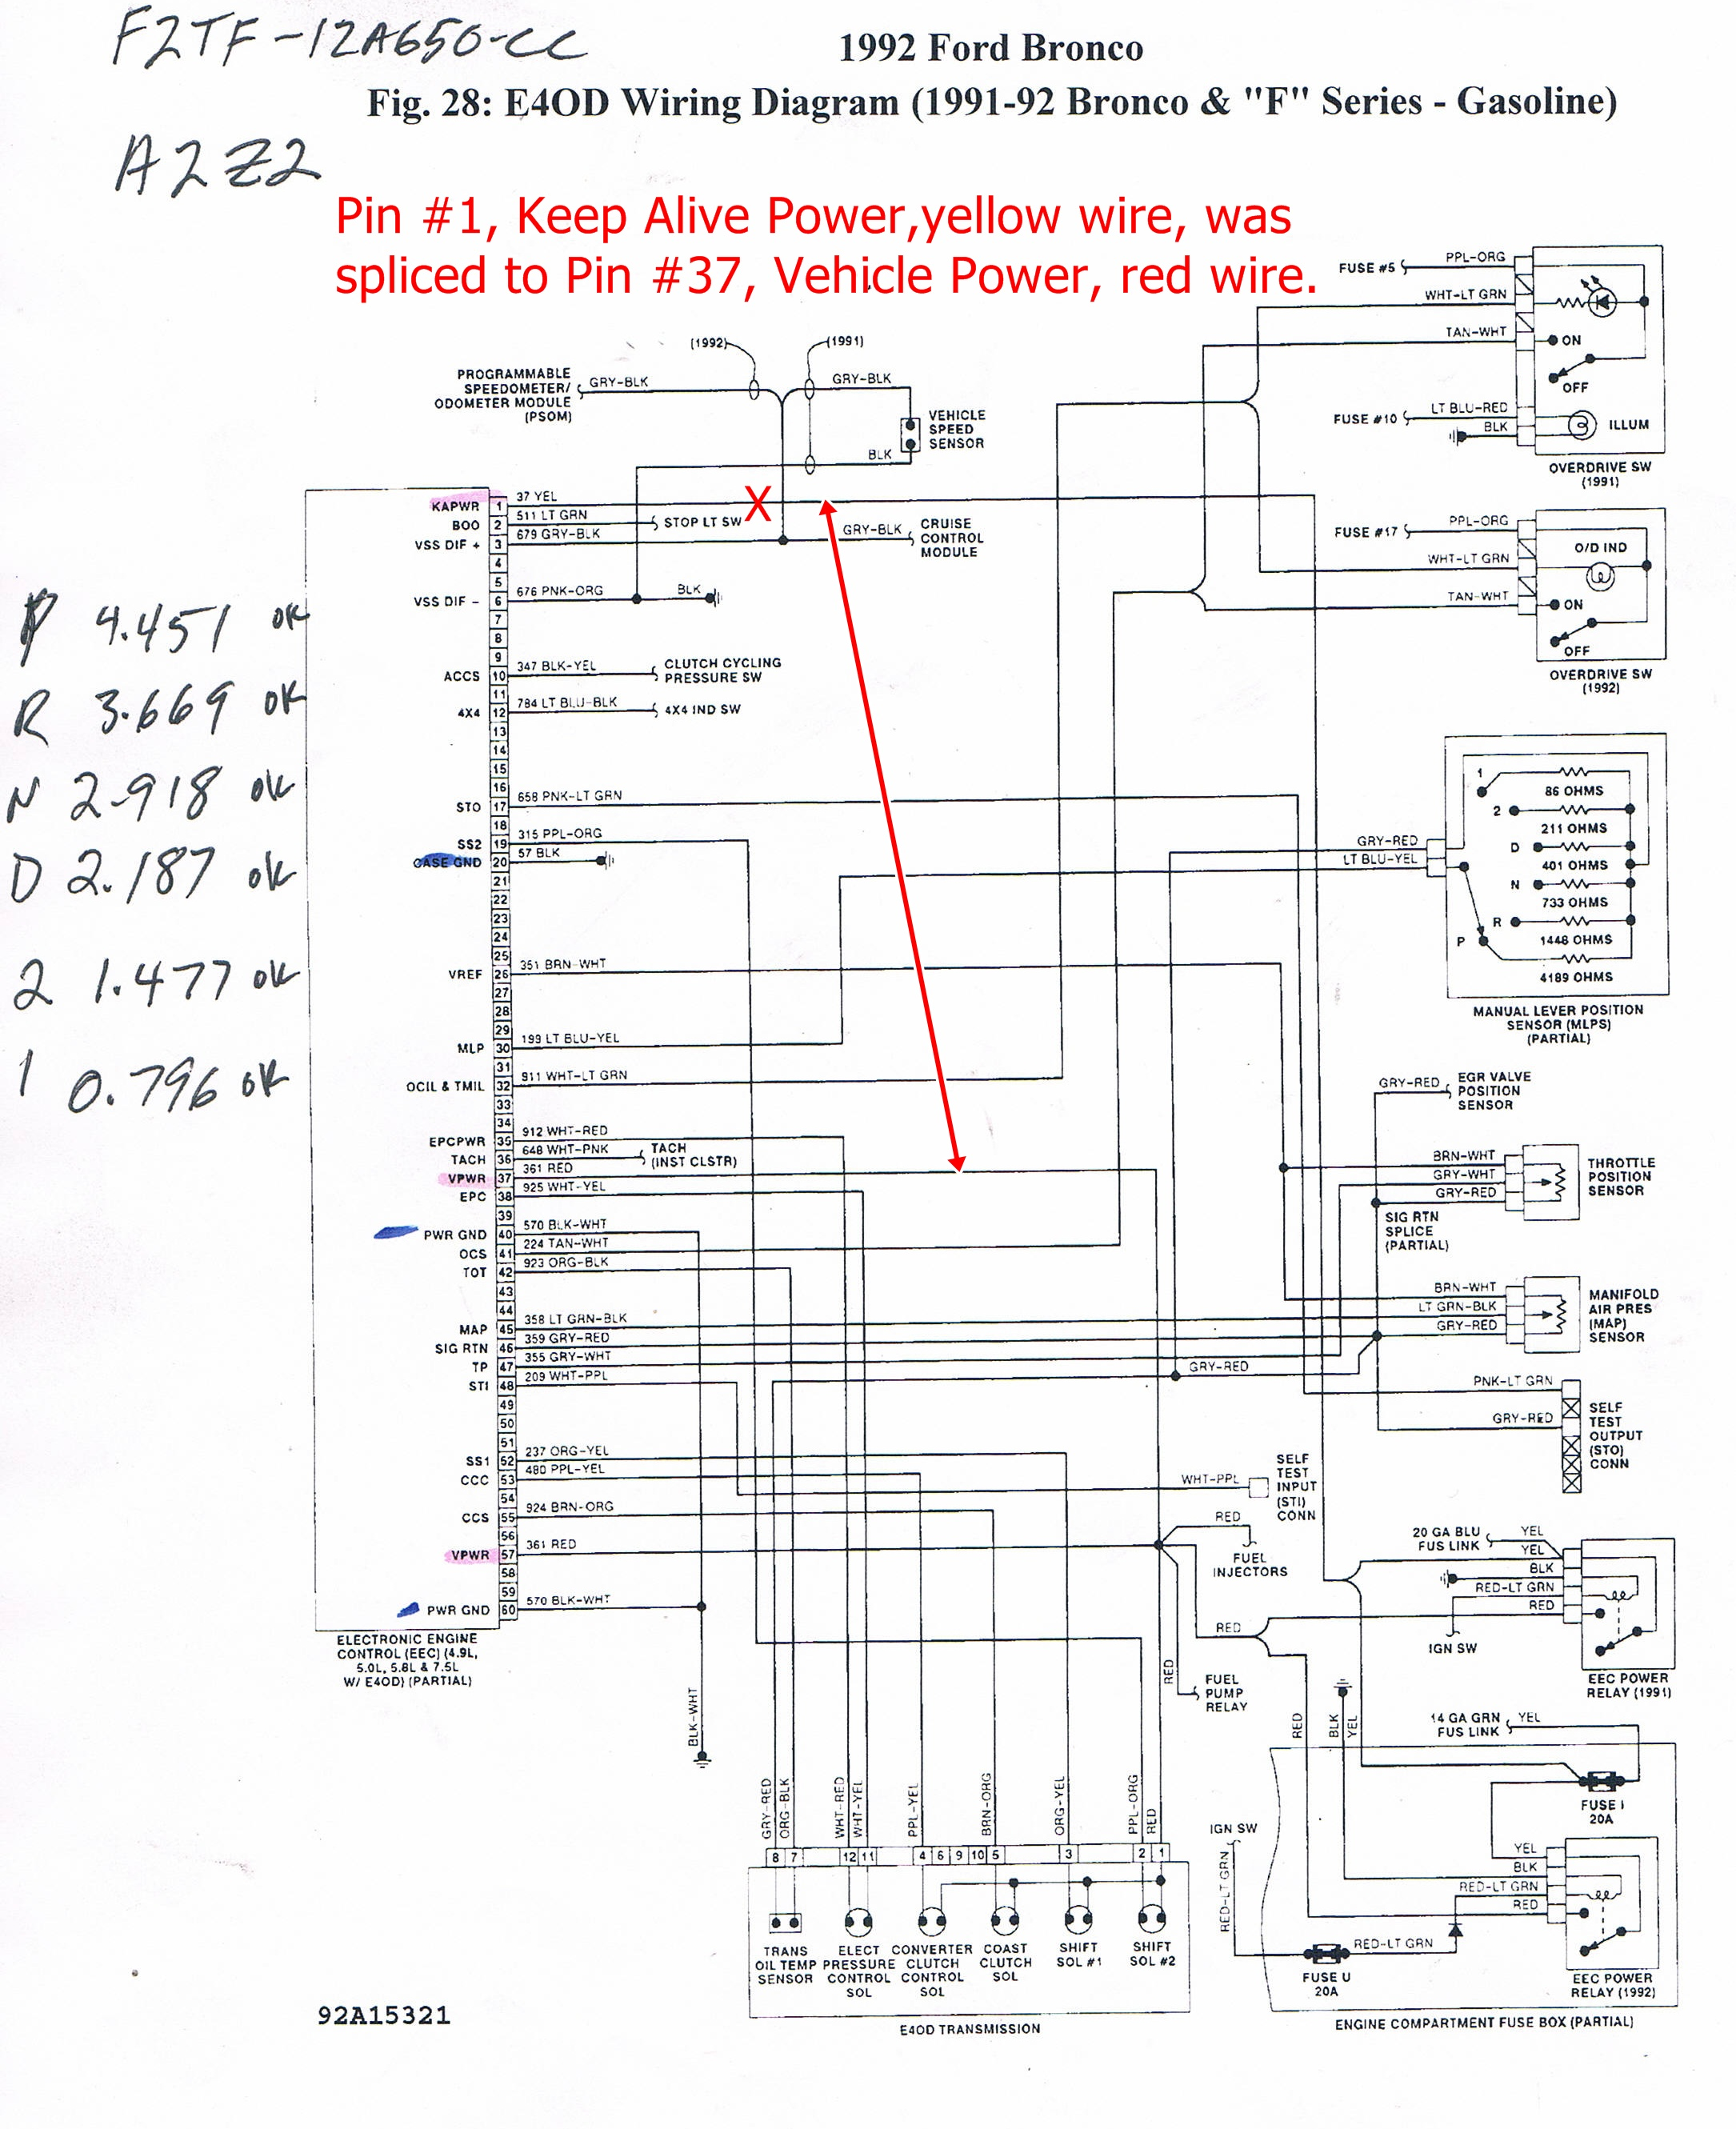 1996 Honda Accord Radio Wiring Diagram from static-resources.imageservice.cloud